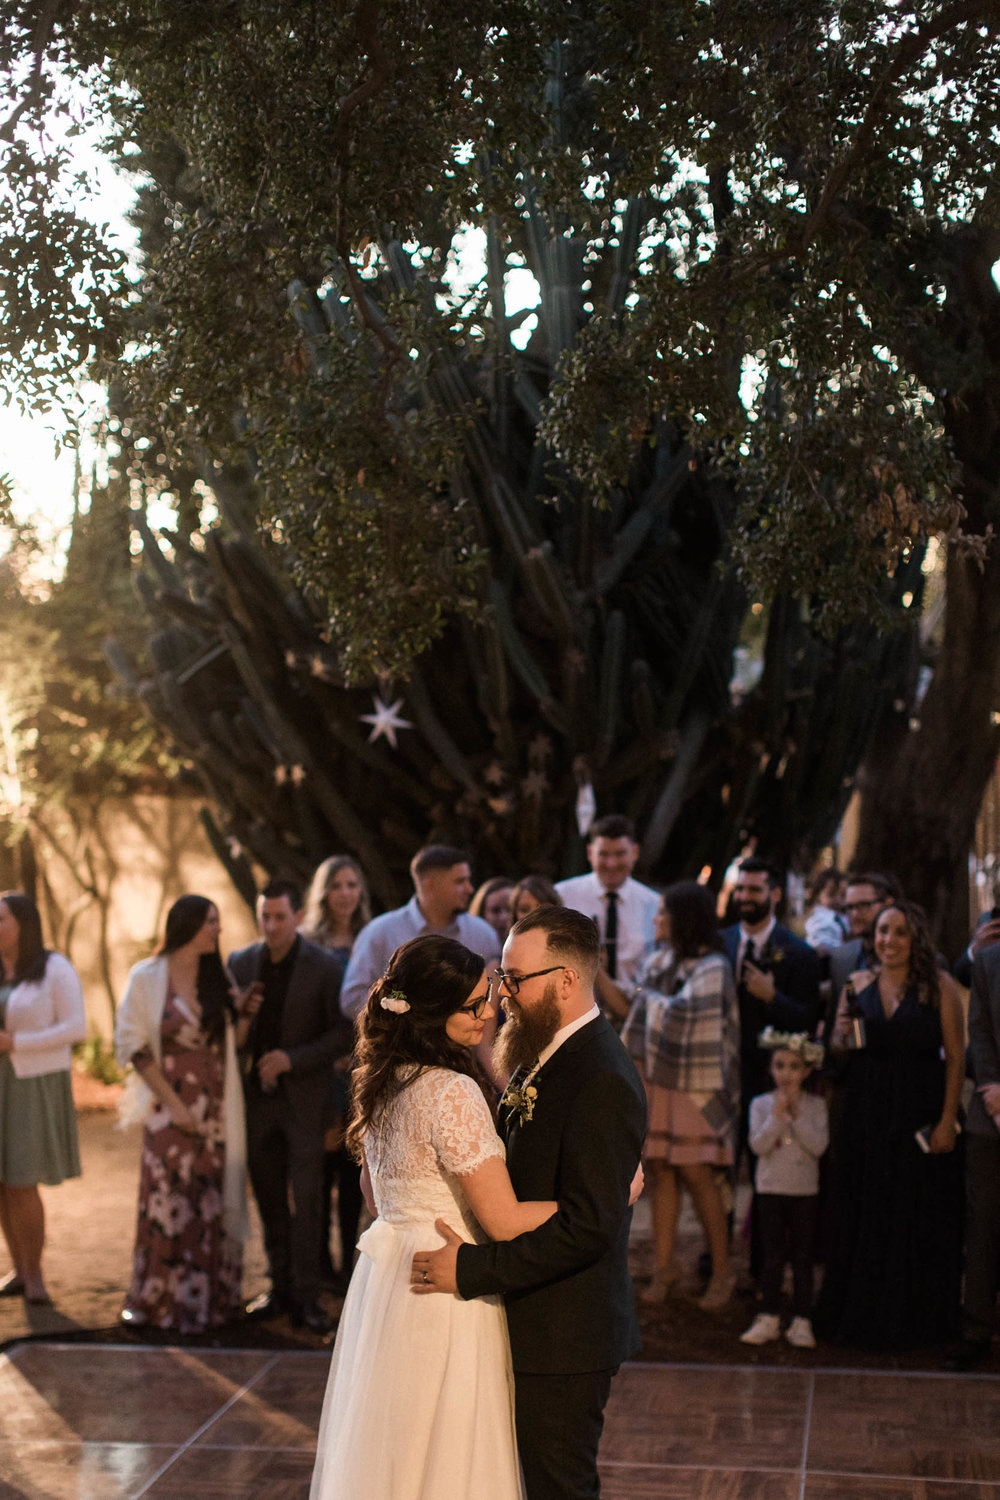 BKM-Photography-Highland-Park-Los-Angeles-Backyard-DIY-Wedding-0114.jpg